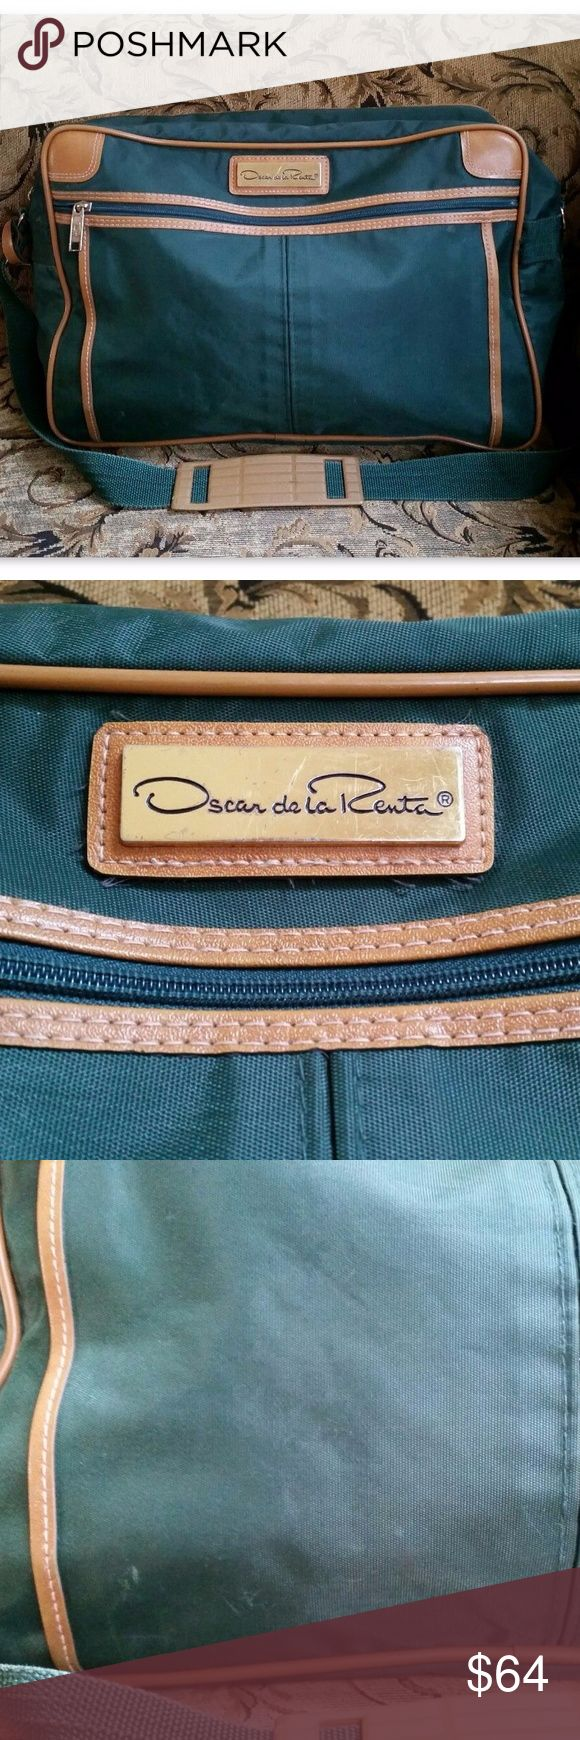 Oscar de la Renta Vintage Travel Bag 100% Authentic Oscar de la Renta Travel Bag! True Vintage travel bag made exclusively for Oscar de la Renta by H. Rosenfeeld Luggage. Large nylon duffle bag with brown PVC/leather trim and large logo plate on front. Adjustable shoulder strap with padding. Top zip closure. Large front pocket and luggage tag holder at side. Signature logo print lining. Handsome vintage bag perfect for men or women.  Good condition - light wear on exterior (small marks…